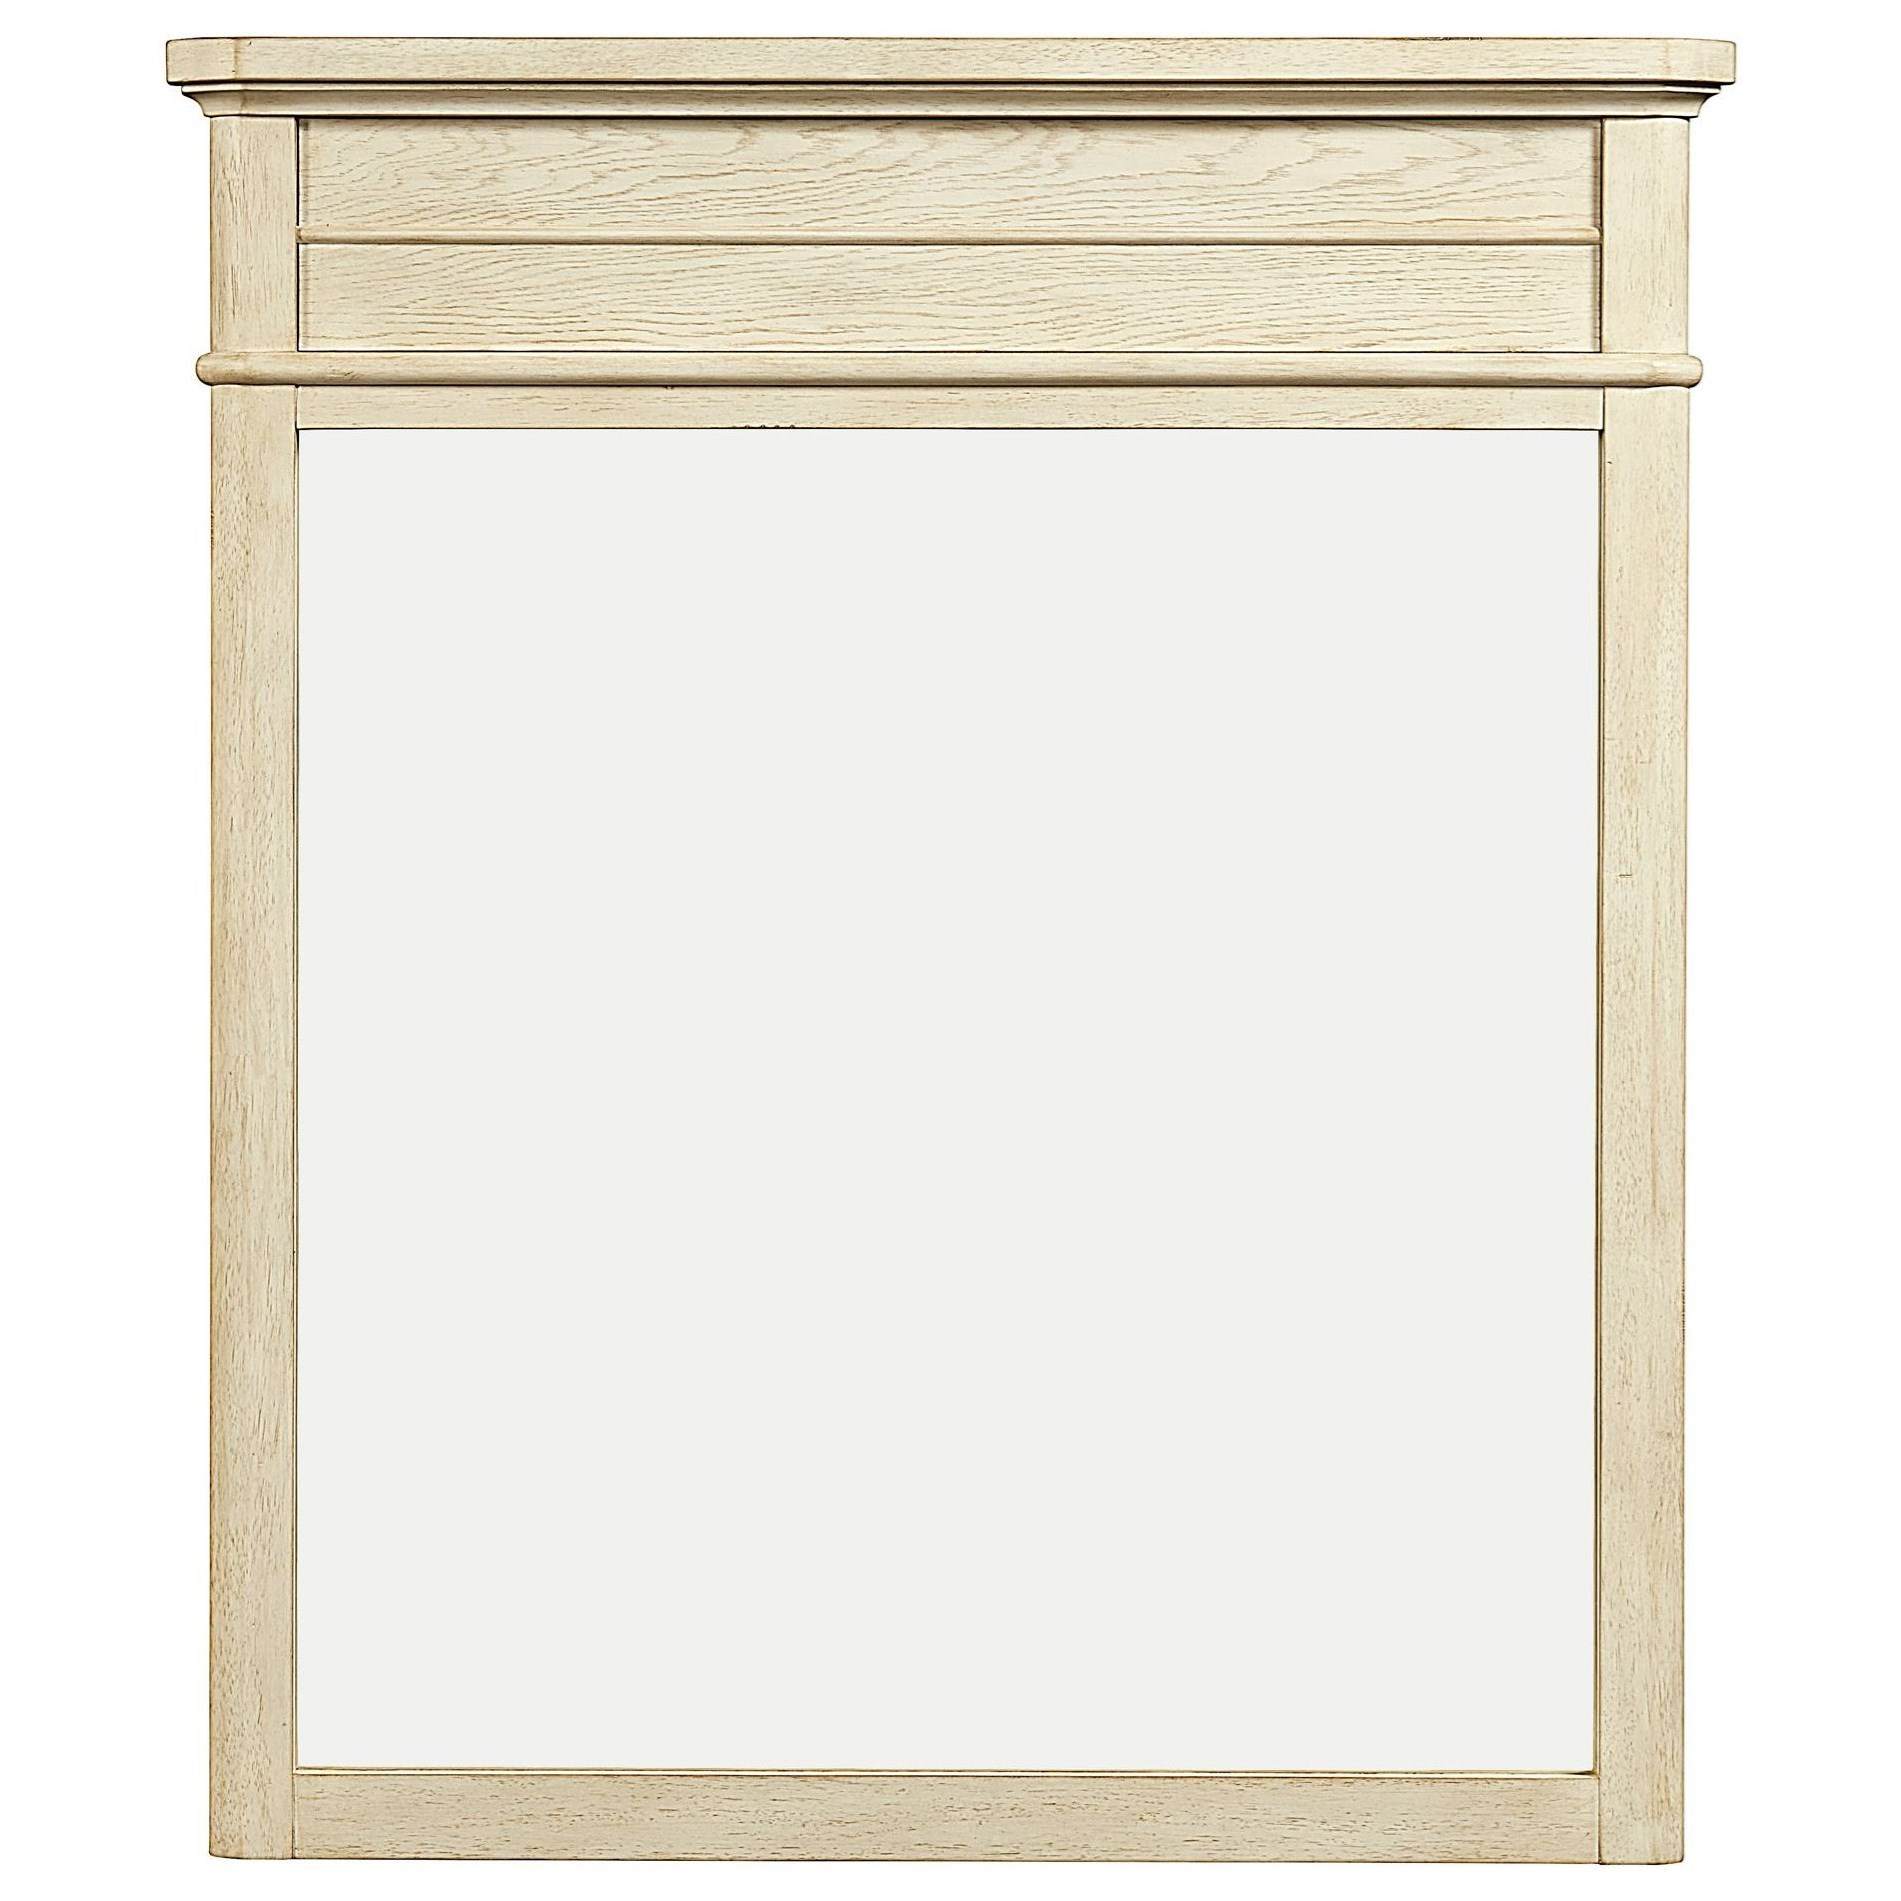 Driftwood Park Mirror by Stone & Leigh Furniture at Alison Craig Home Furnishings